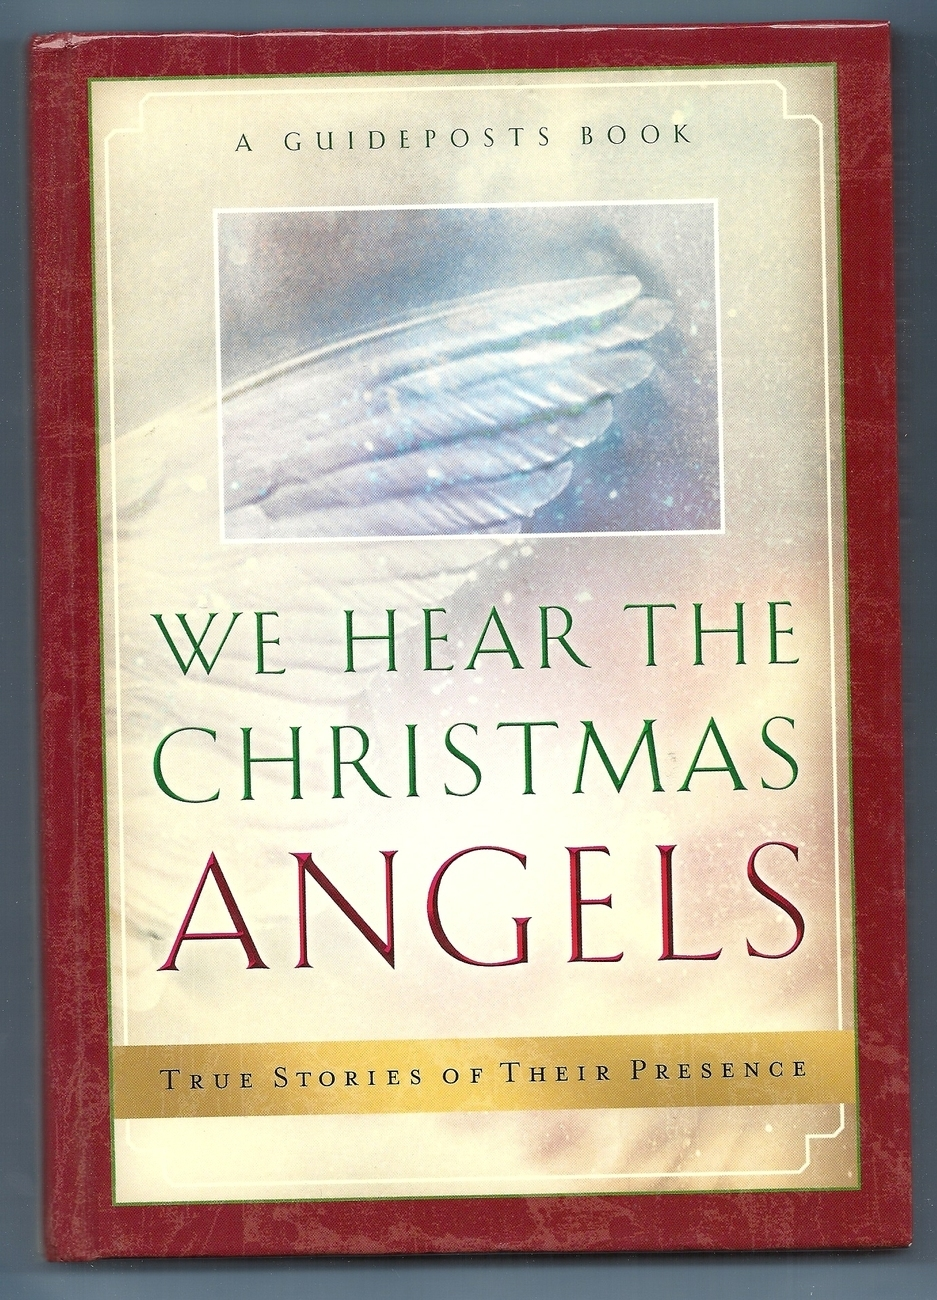 We Hear The Christmas Angels True Stories of Their Presence